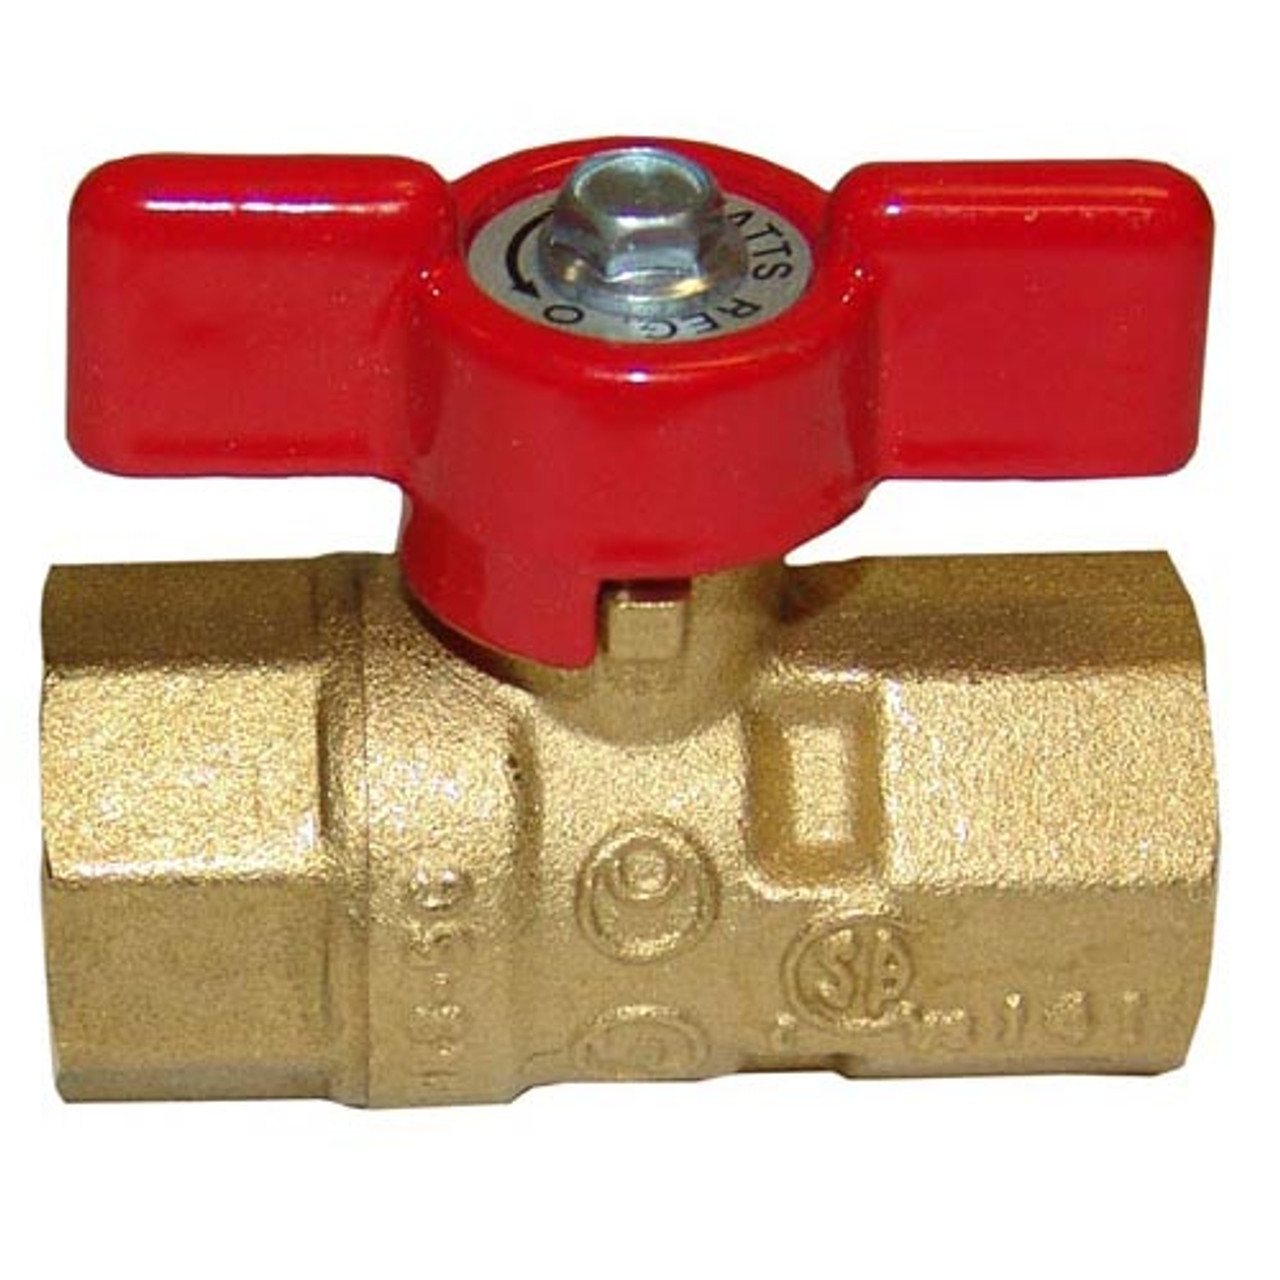 ATTIAS 135 GAS BALL VALVE